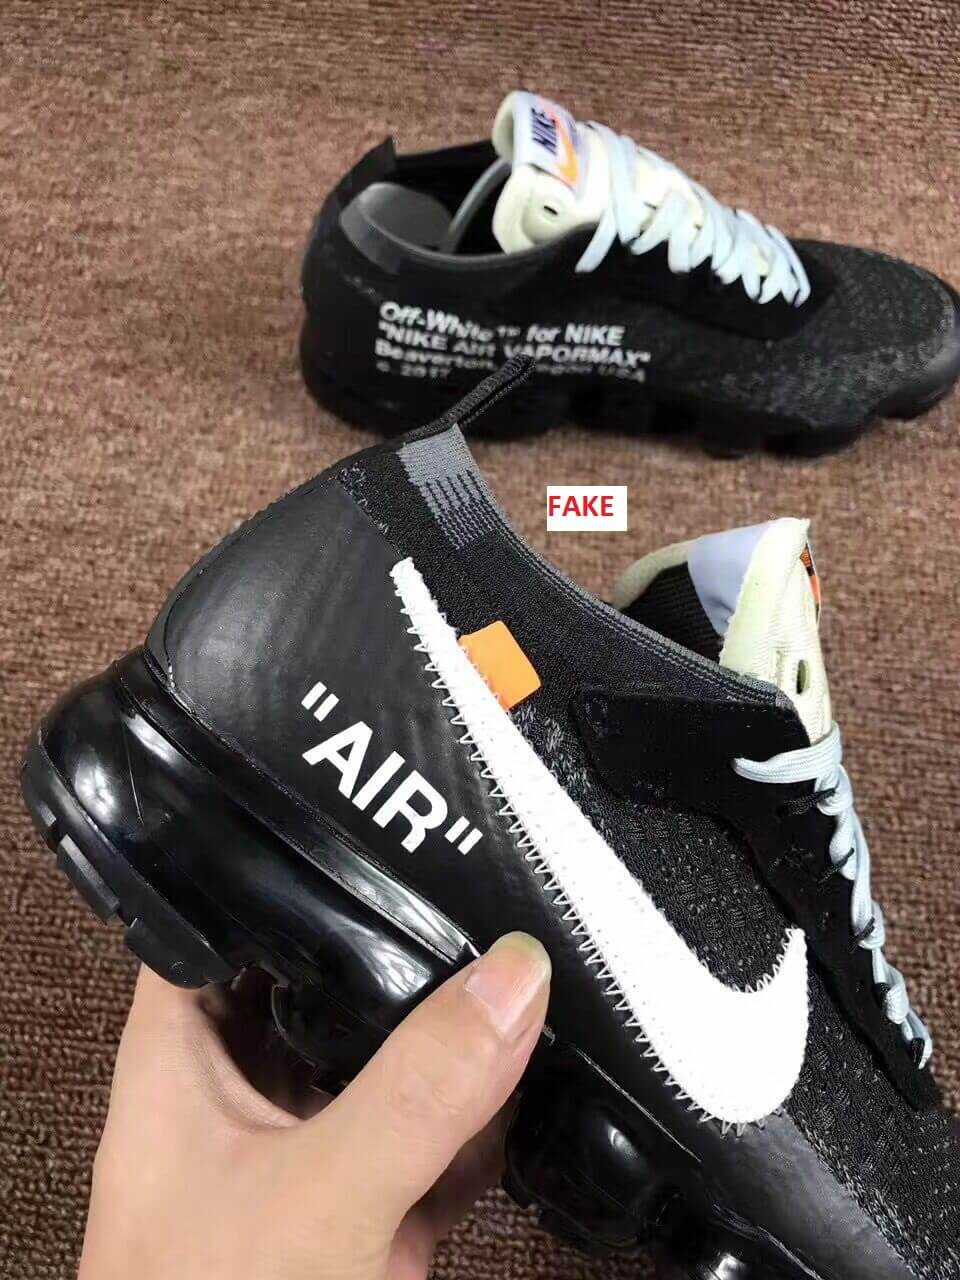 Scary Good Fake Off White Nike Air Vapormax Sneakers Are On The ...